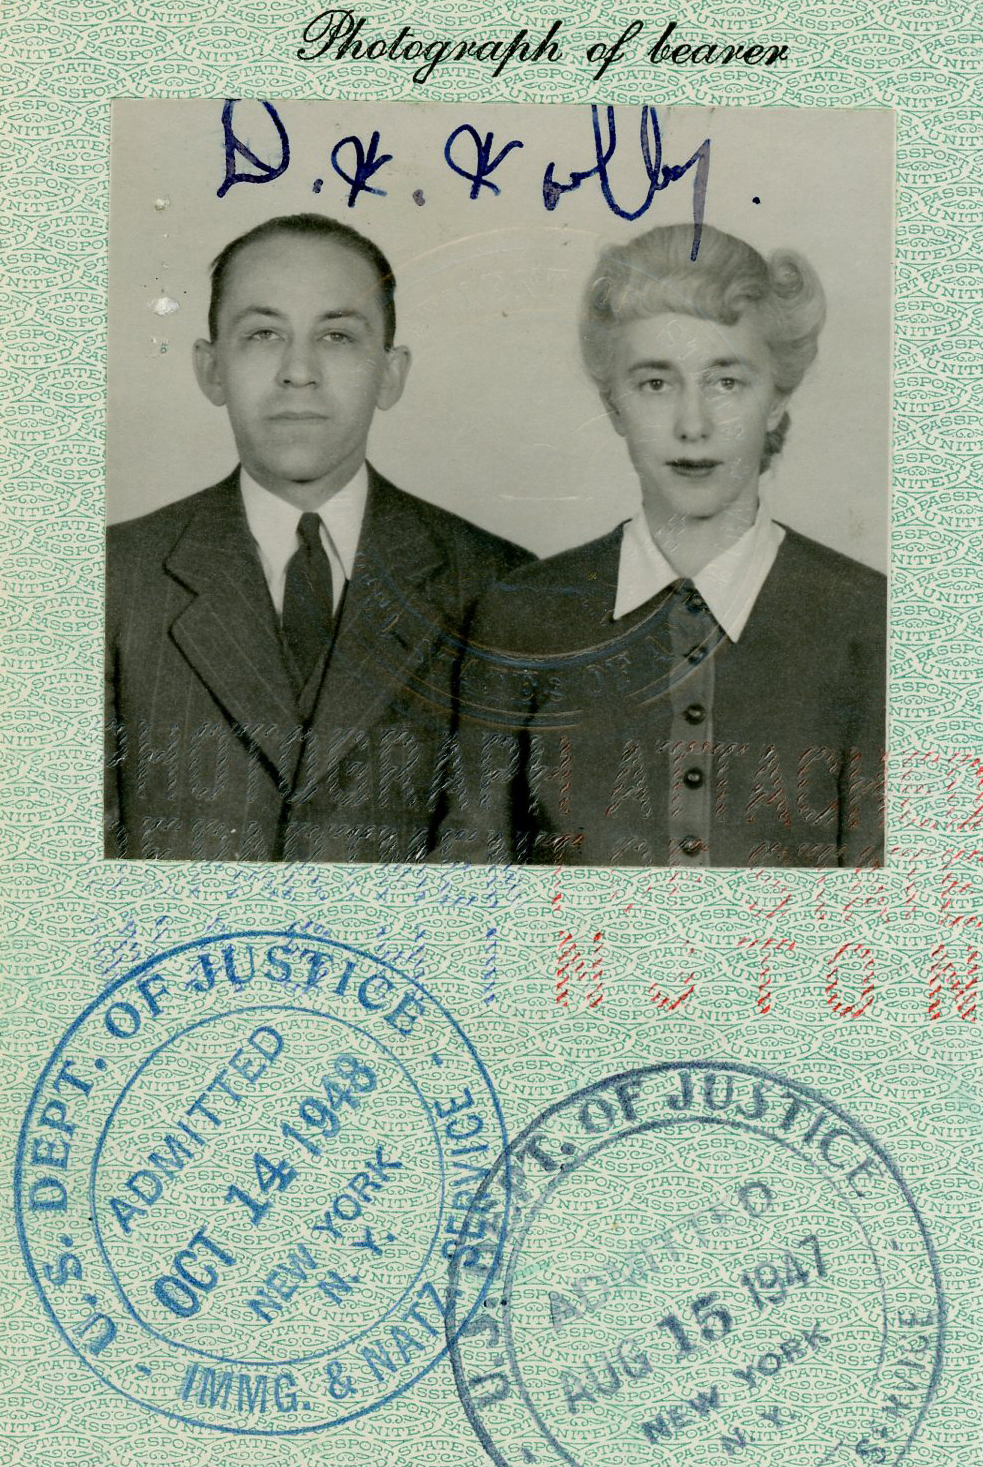 government ID photo of man and woman